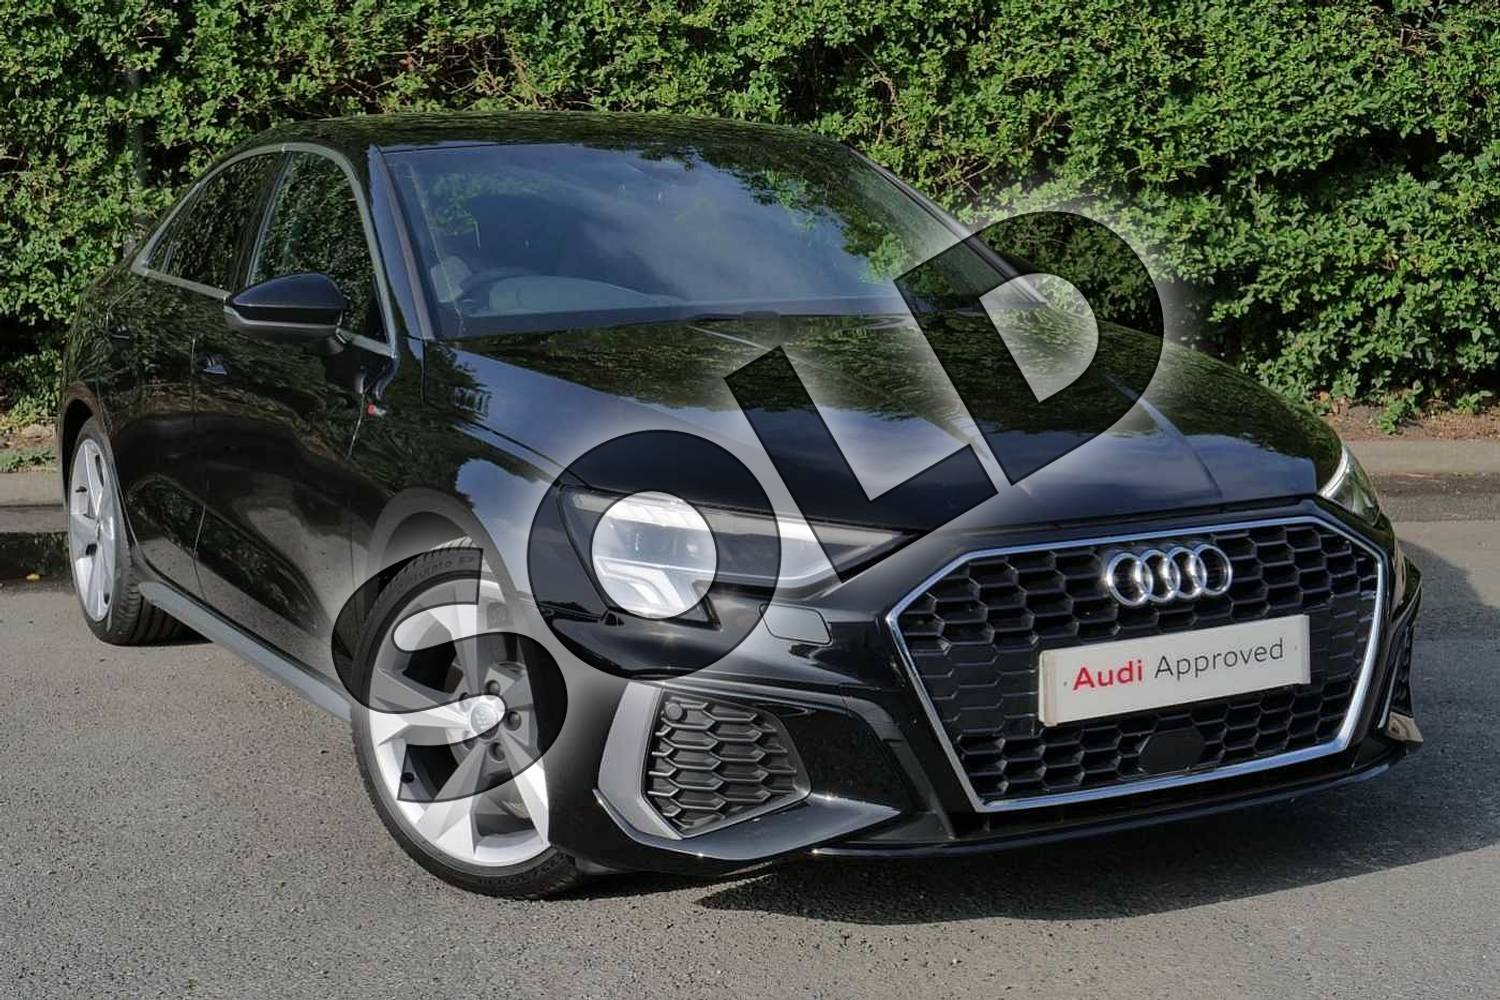 2020 Audi A3 Saloon 35 TFSI S line 4dr S Tronic in Myth Black Metallic at Worcester Audi